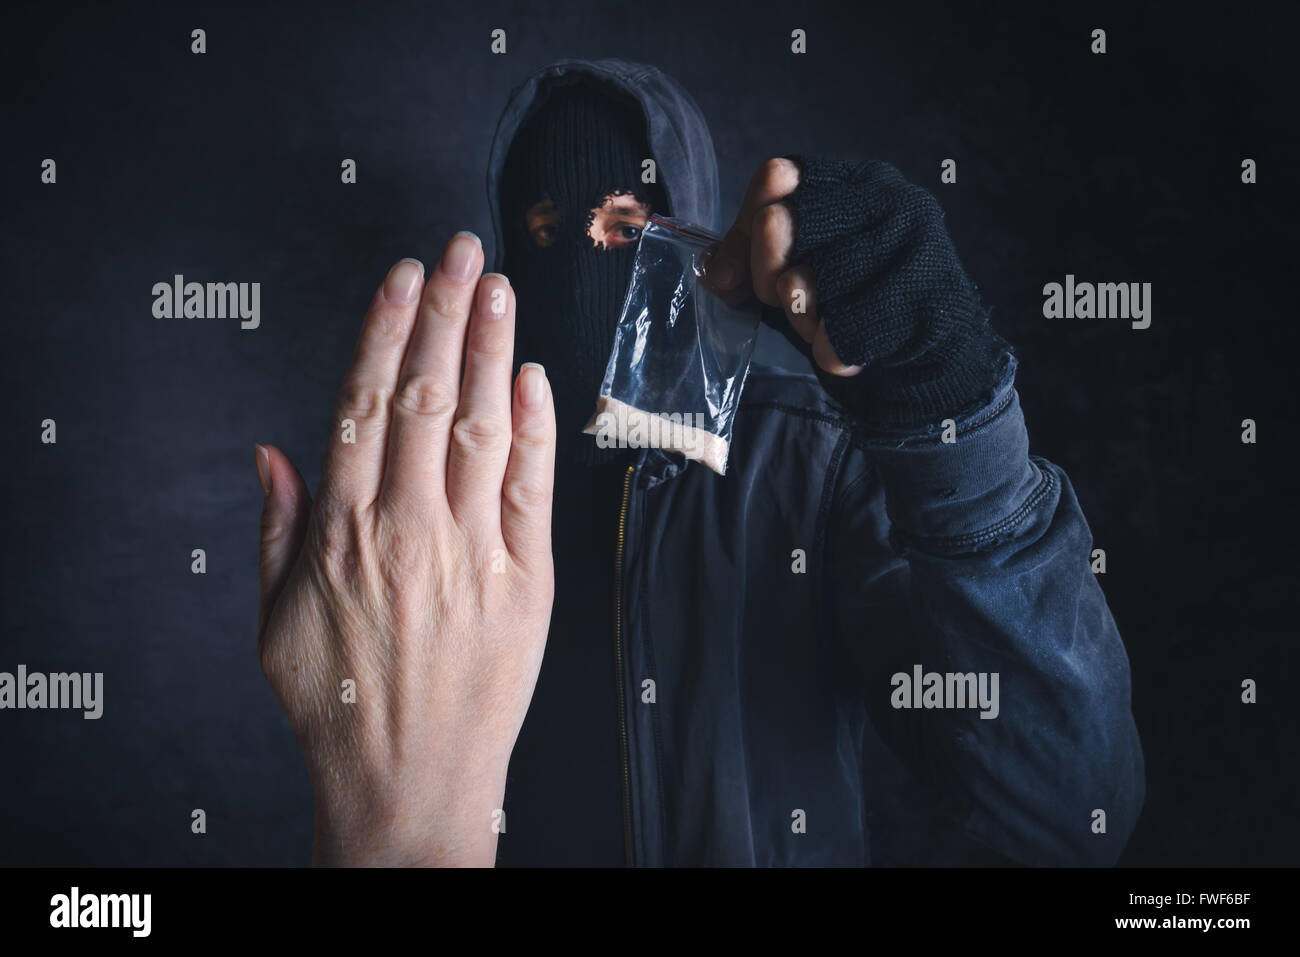 Saying No to drug dealer offering narcotic substance, fight addiction, unrecognizable hooded criminal offering drugs - Stock Image